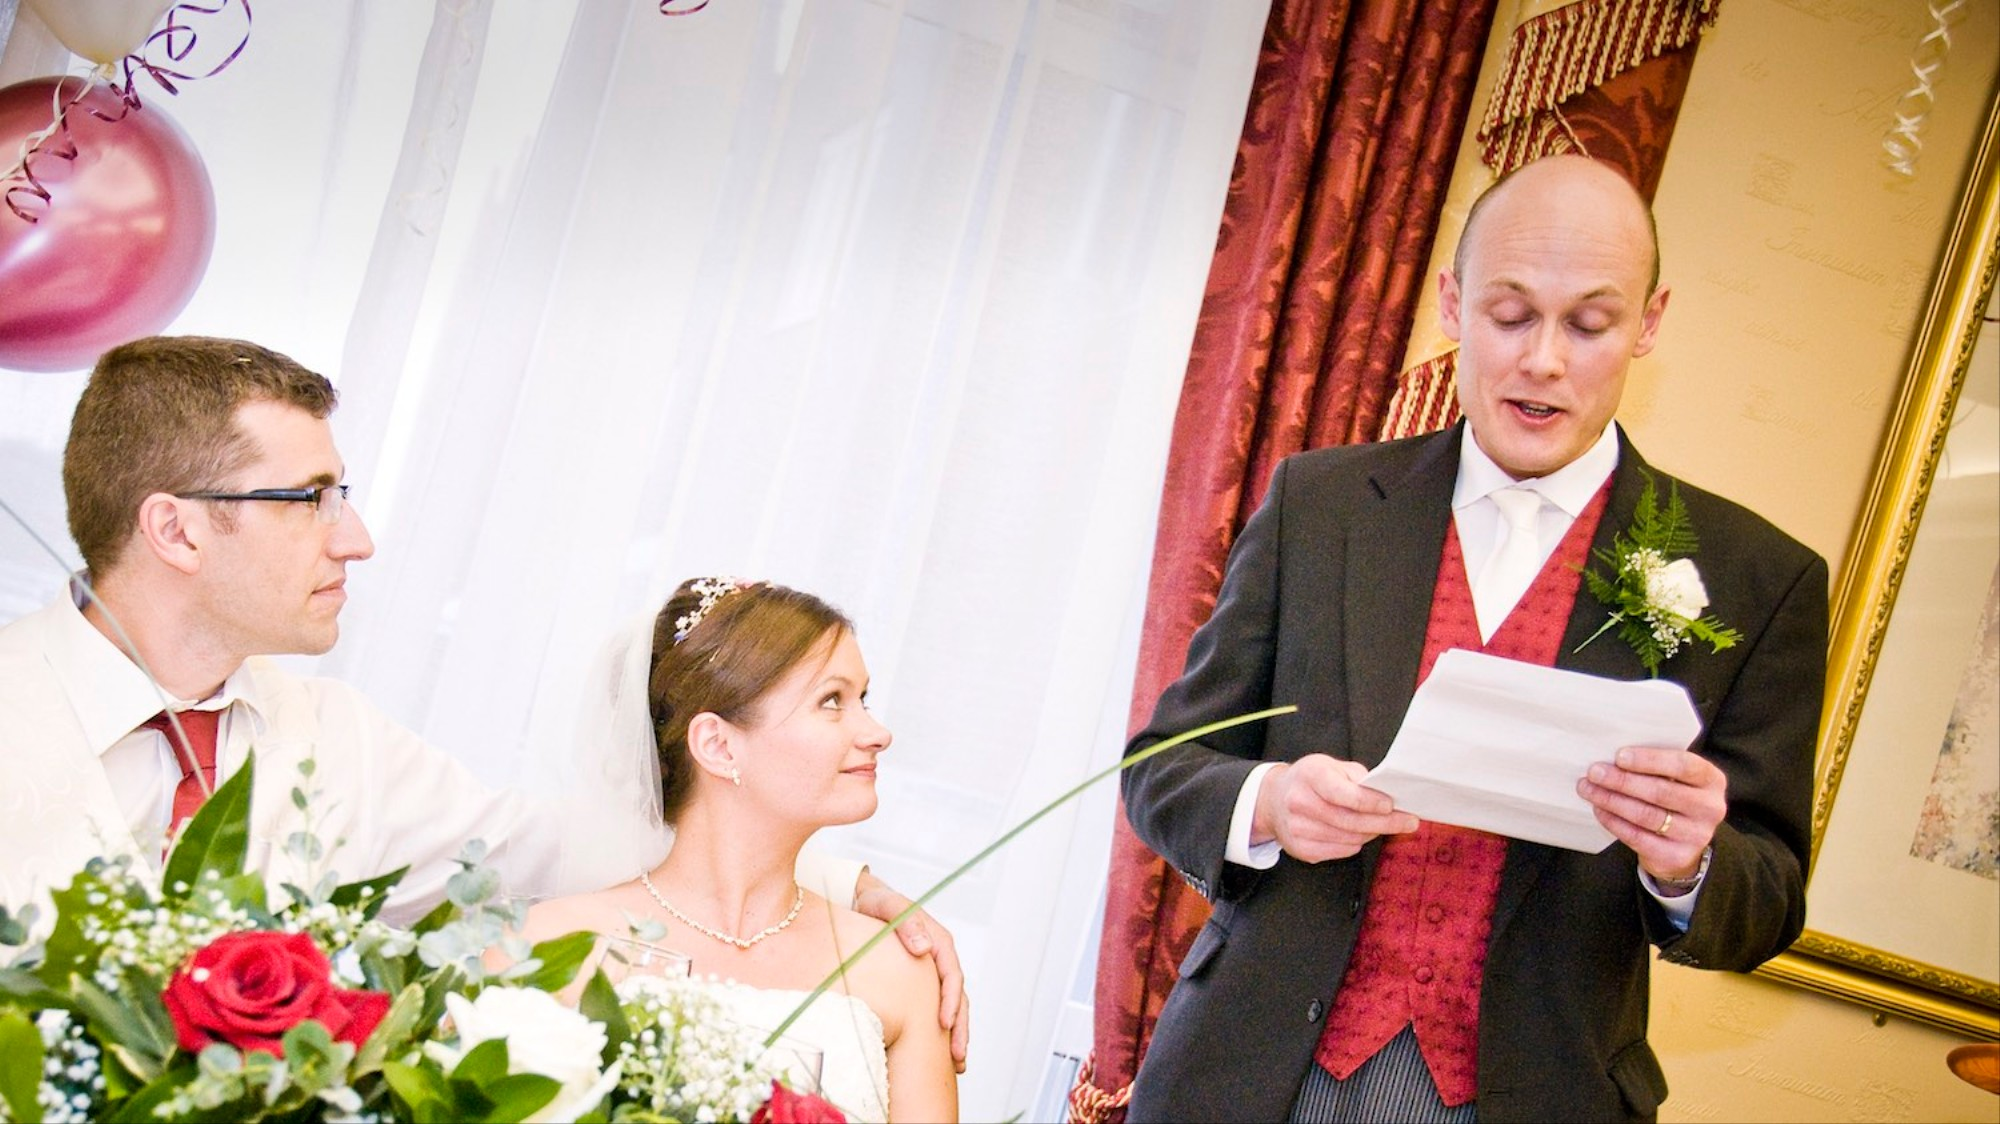 Bad Wedding Photos.Wedding Djs Describe The Worst Speeches They Ve Ever Heard Vice